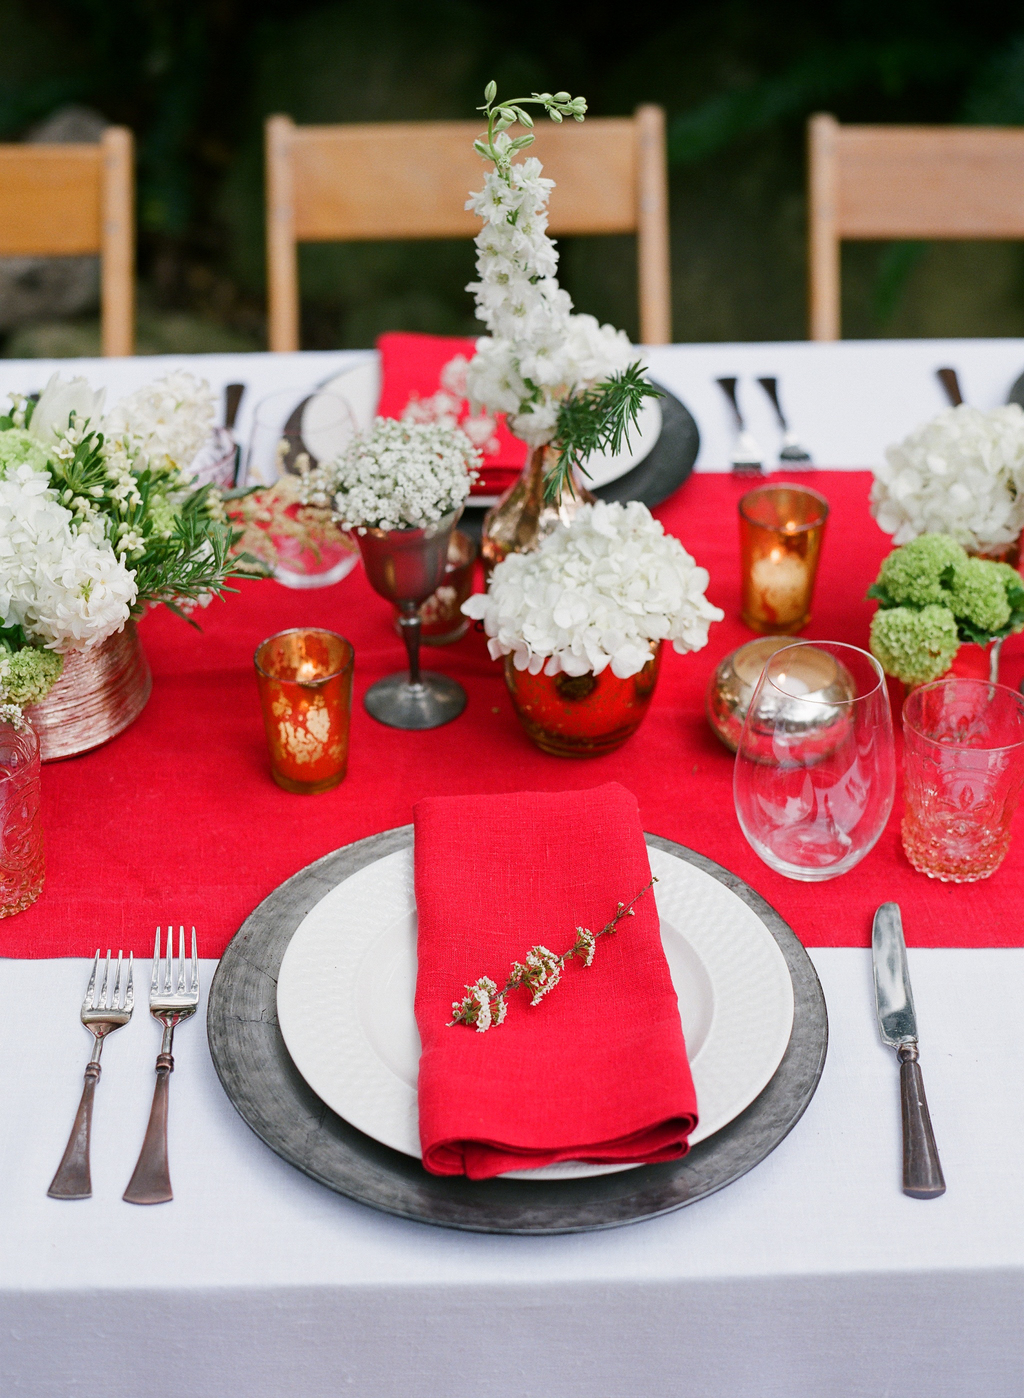 Styled-wedding-santa-barbara-chic-beaux-arts-photographie-italian-bohemian-wedding-venue-table-setting-red-white-flowers-antique-glass-032.full